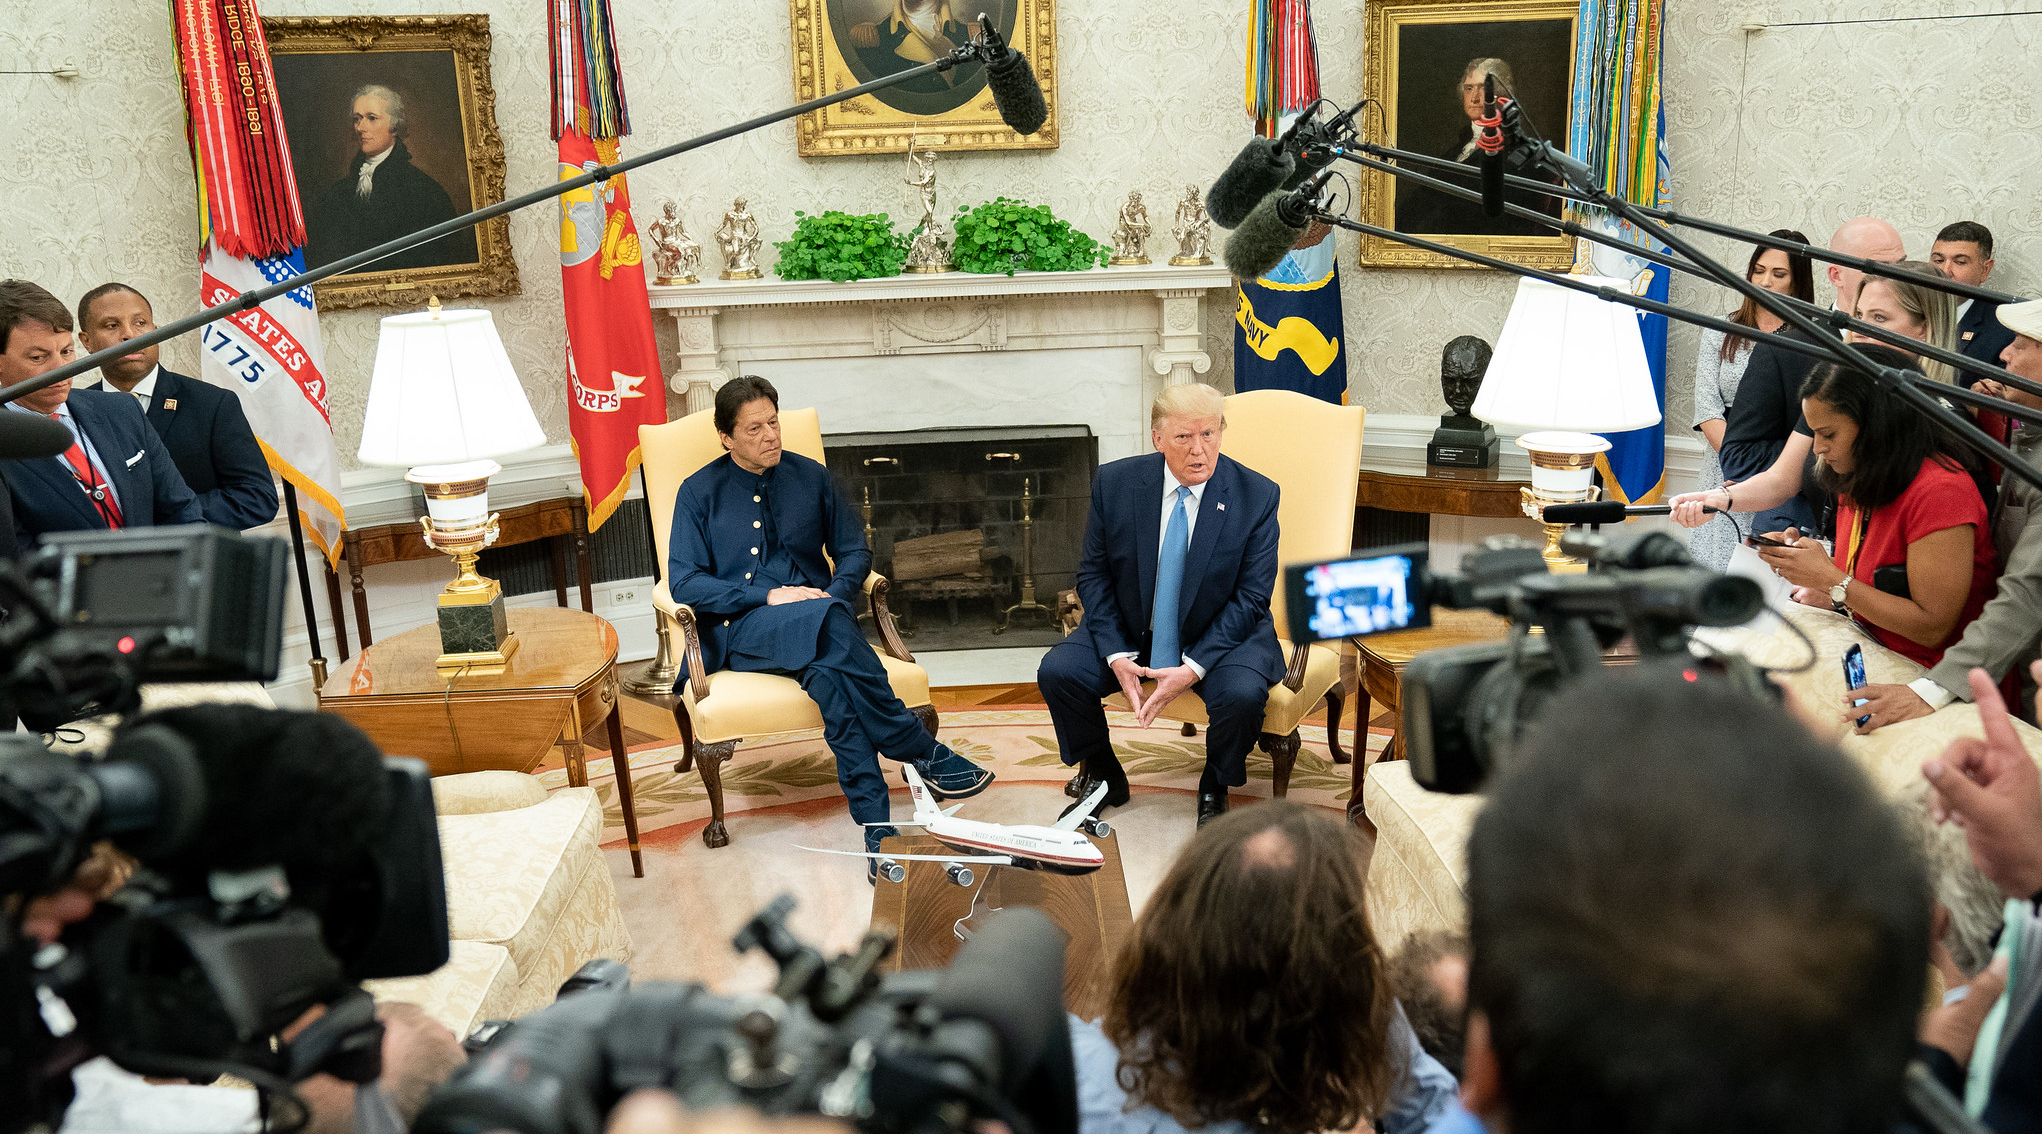 President Donald Trump meets with Prime Minister Imran Khan in the Oval Office on July 22, 2019. Photo credit: Official White House Photo by Shealah Craighead/Public Domain via Flickr